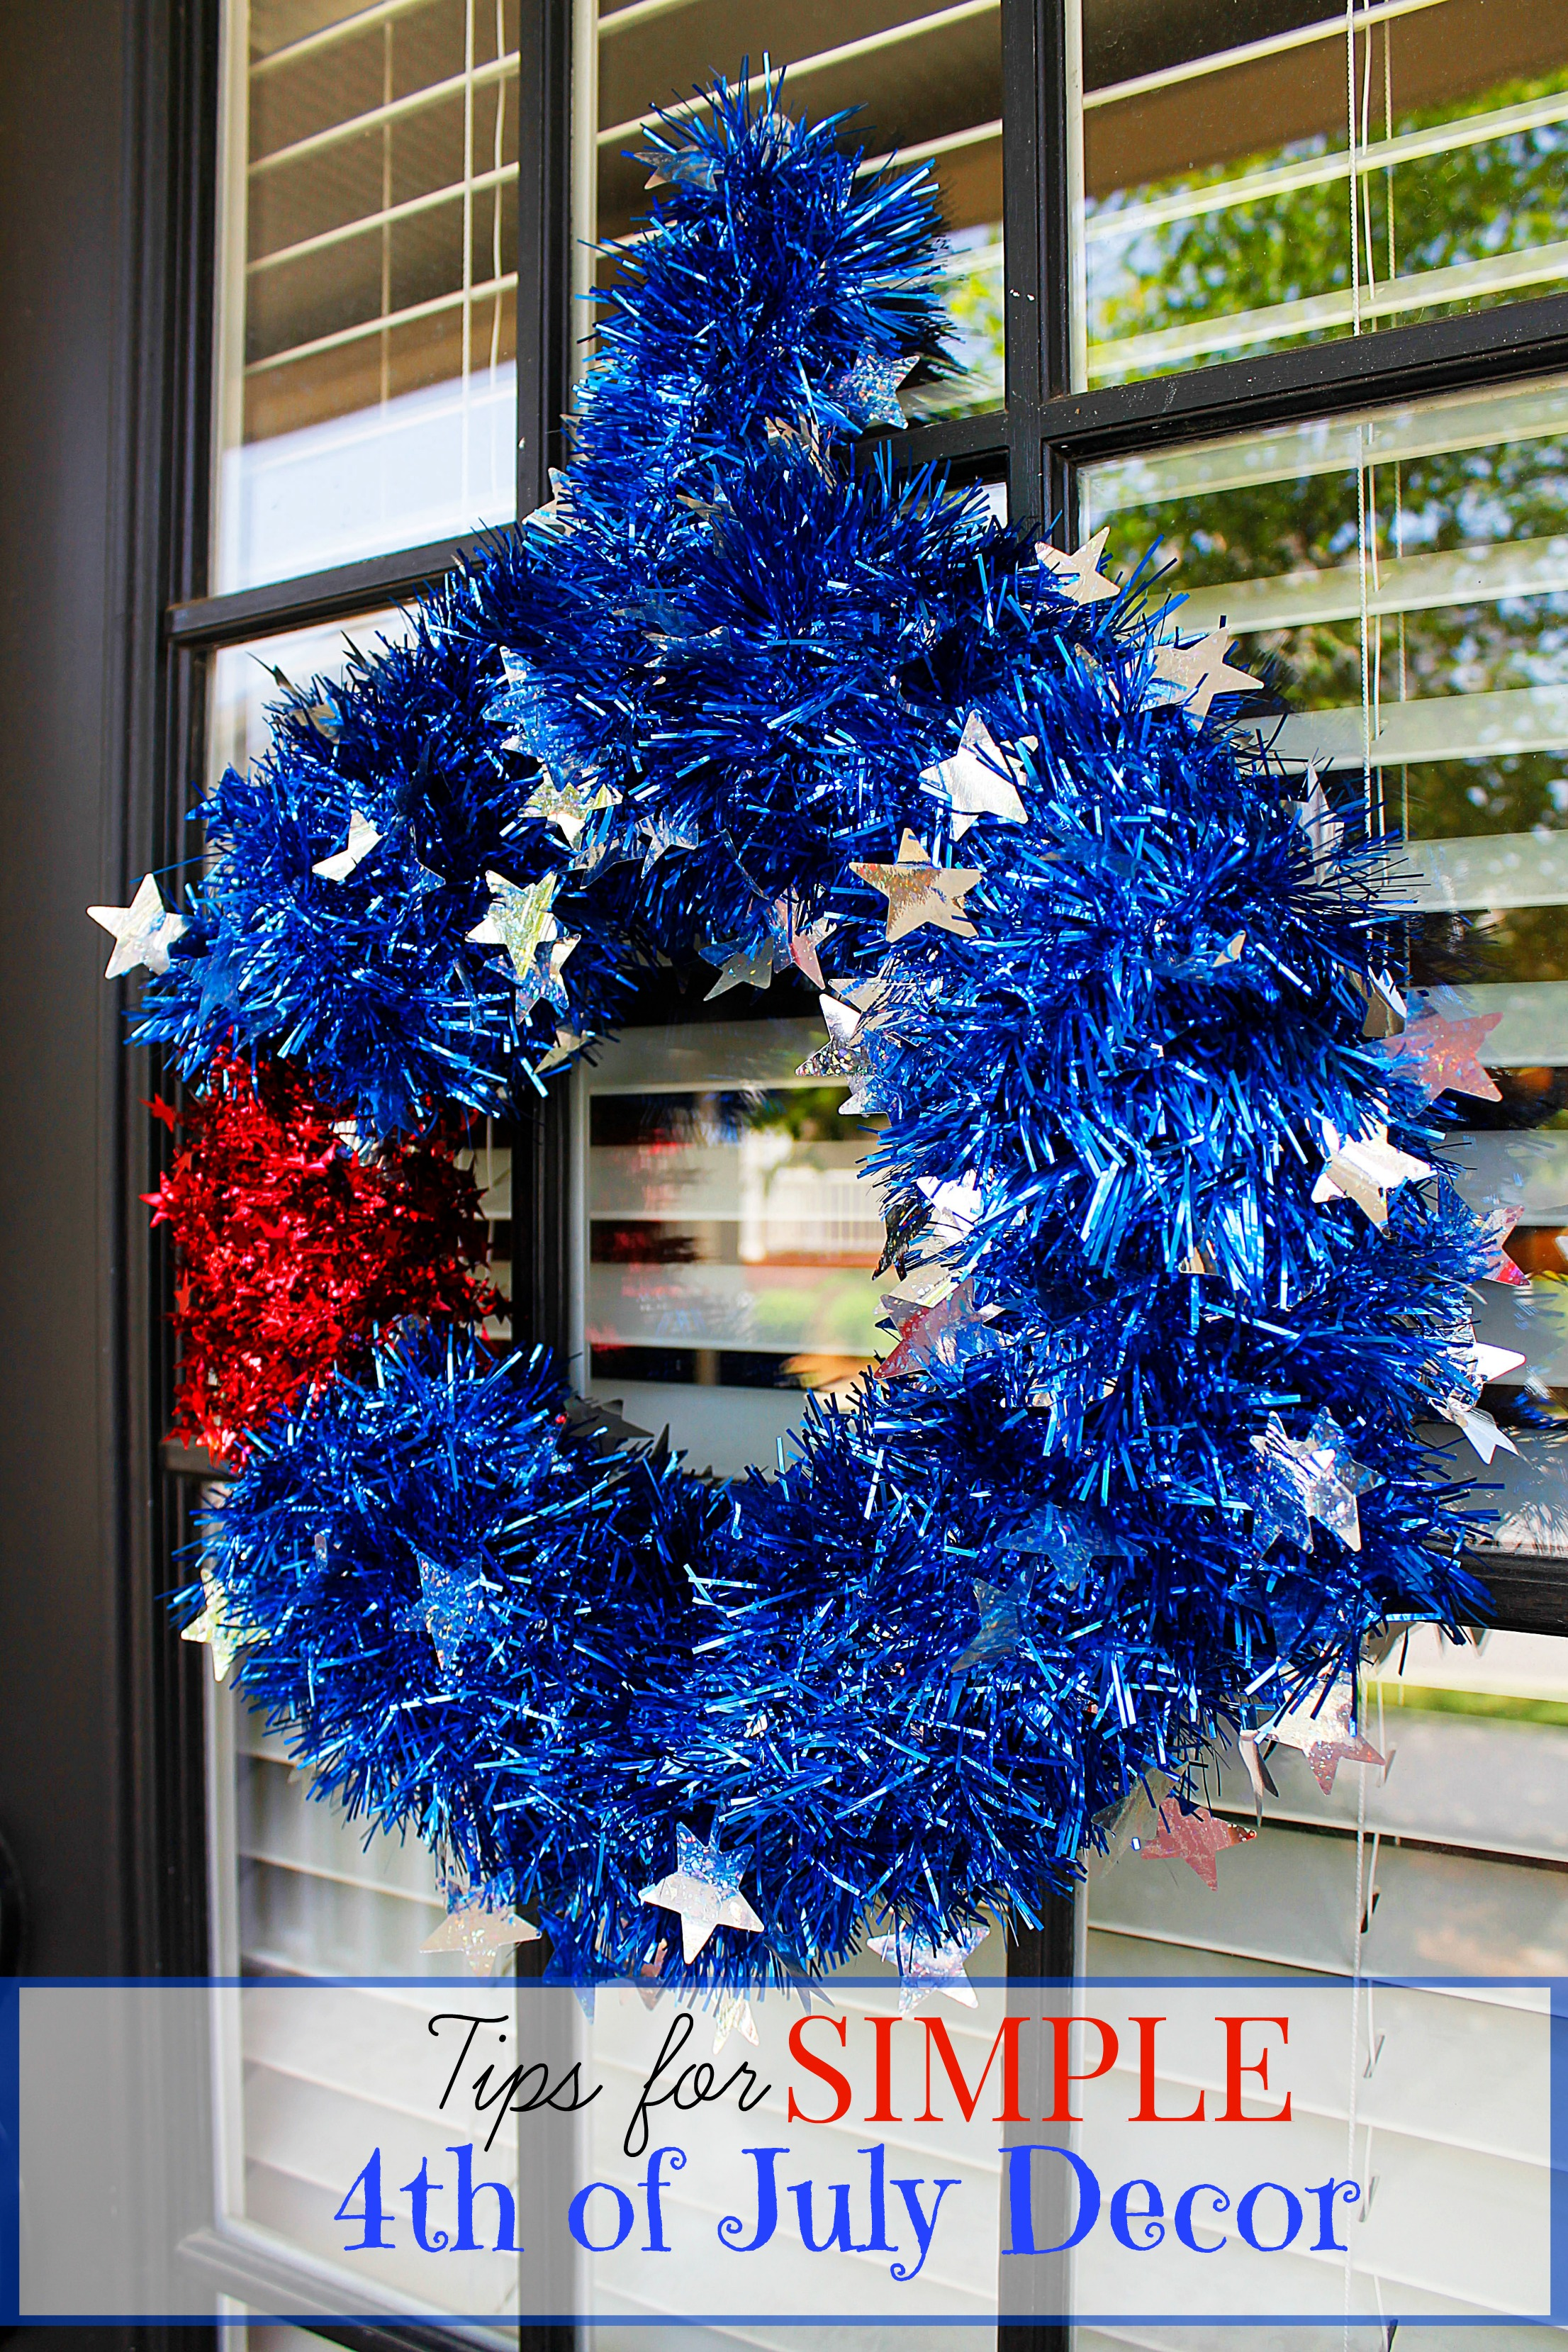 Tips for simple 4th of july decorations sarah in the suburbs for 4 of july decorations